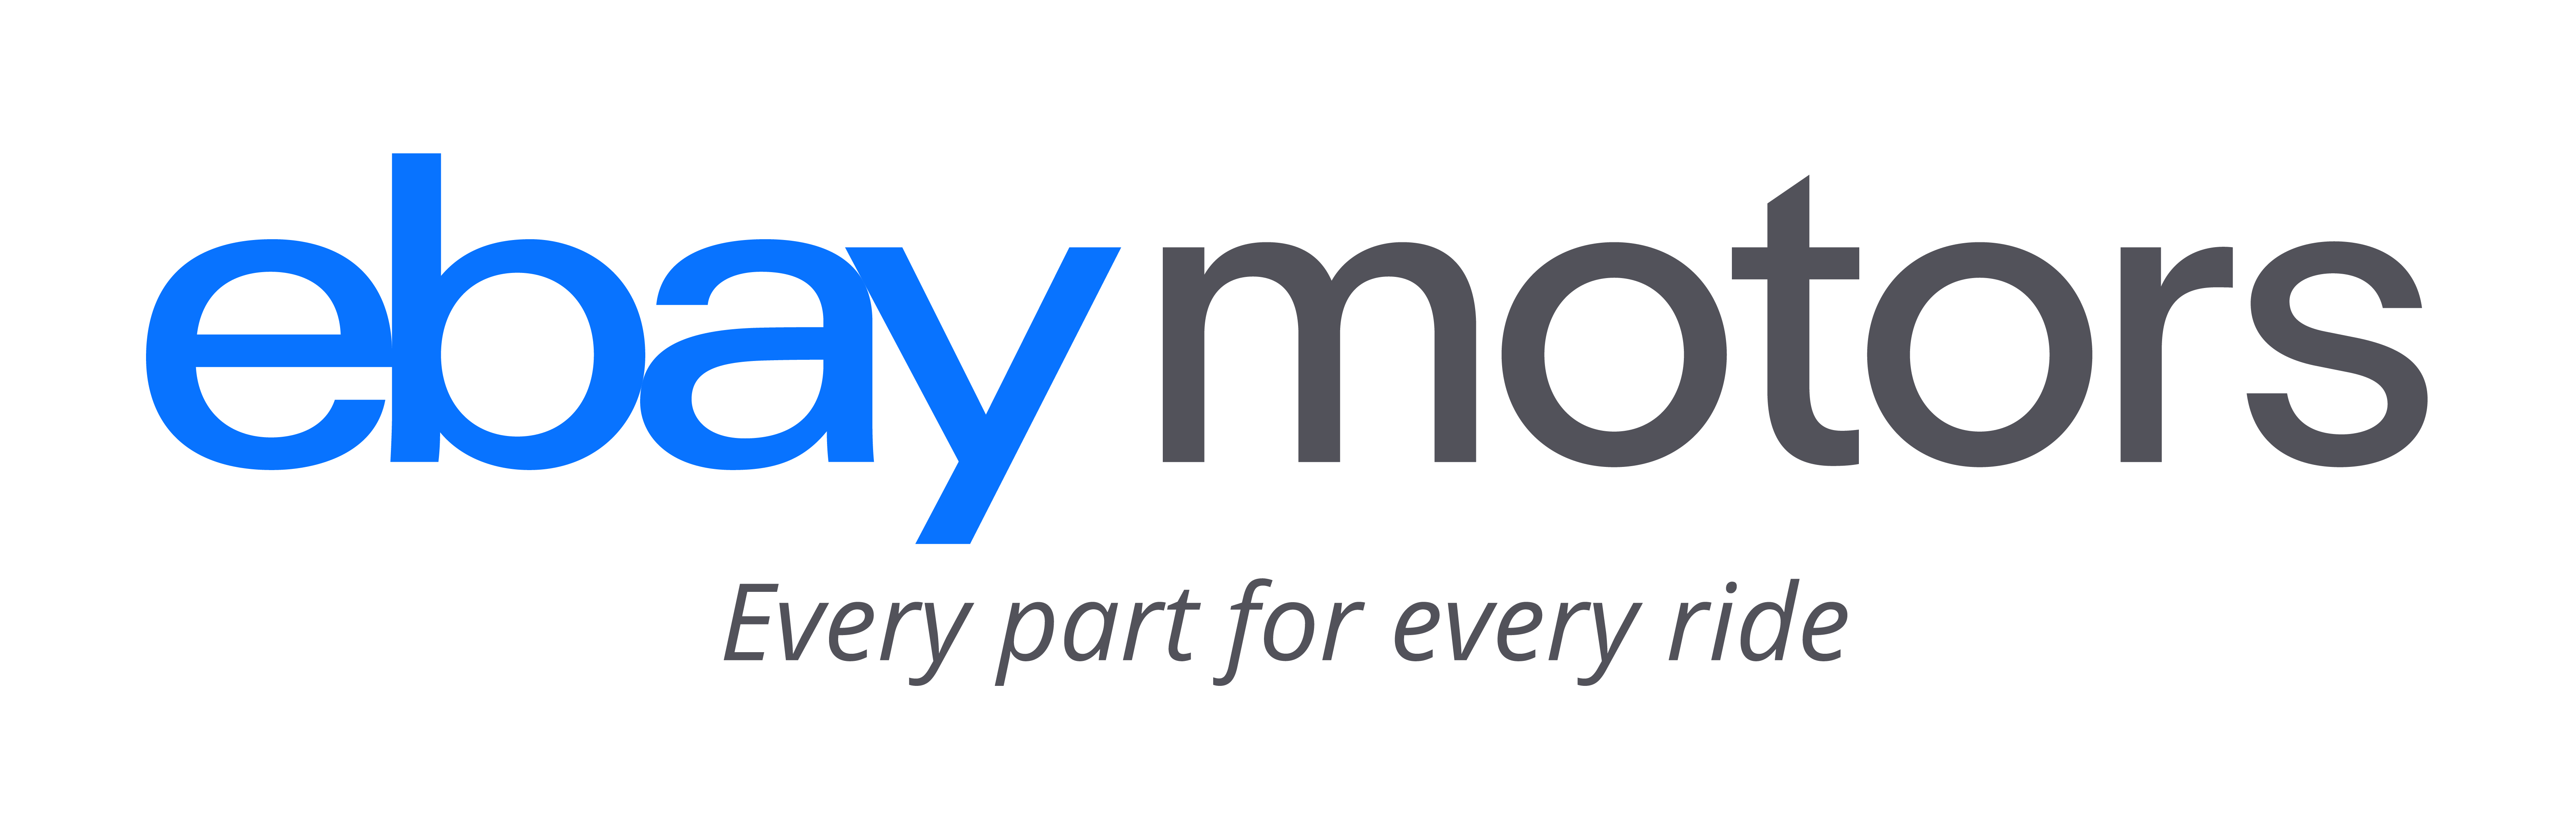 eBay Motors - Every part for every ride logo